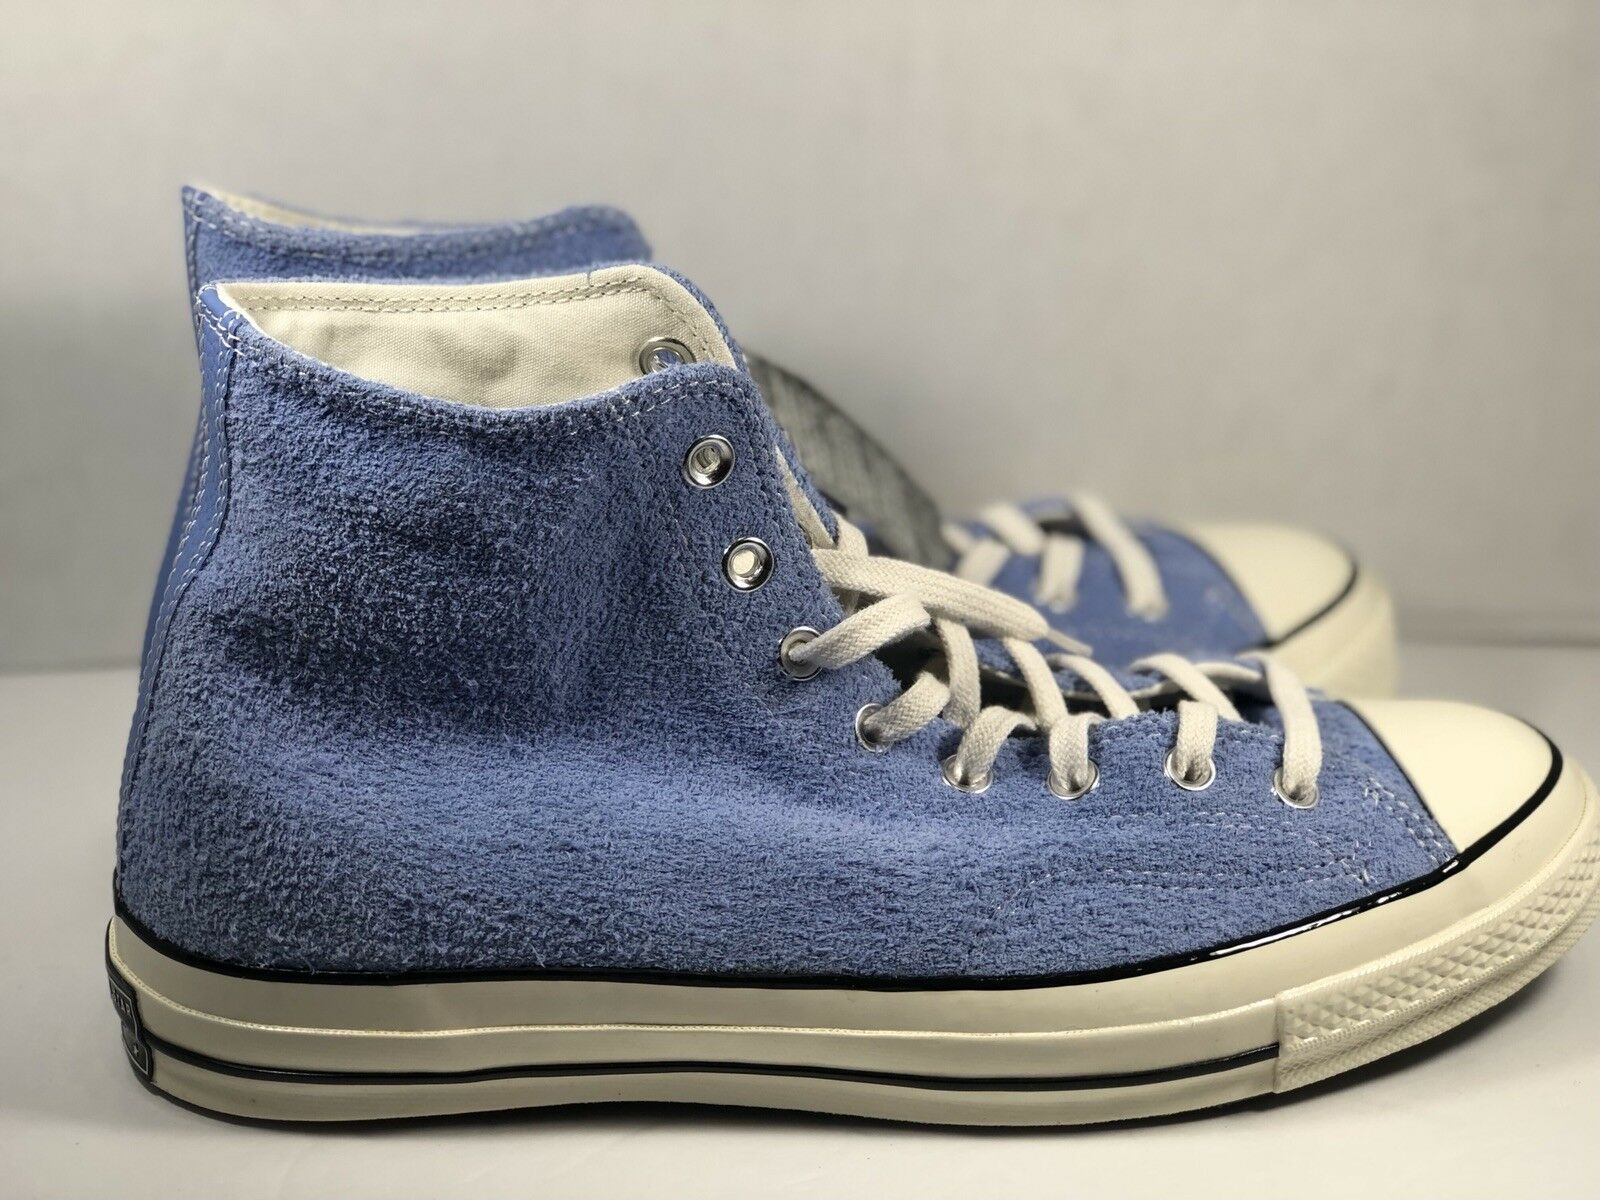 Converse Chuck Taylor All Star 70 High Suede 11 Pioneer Blue Men's Size 11 Suede 157454c 181768